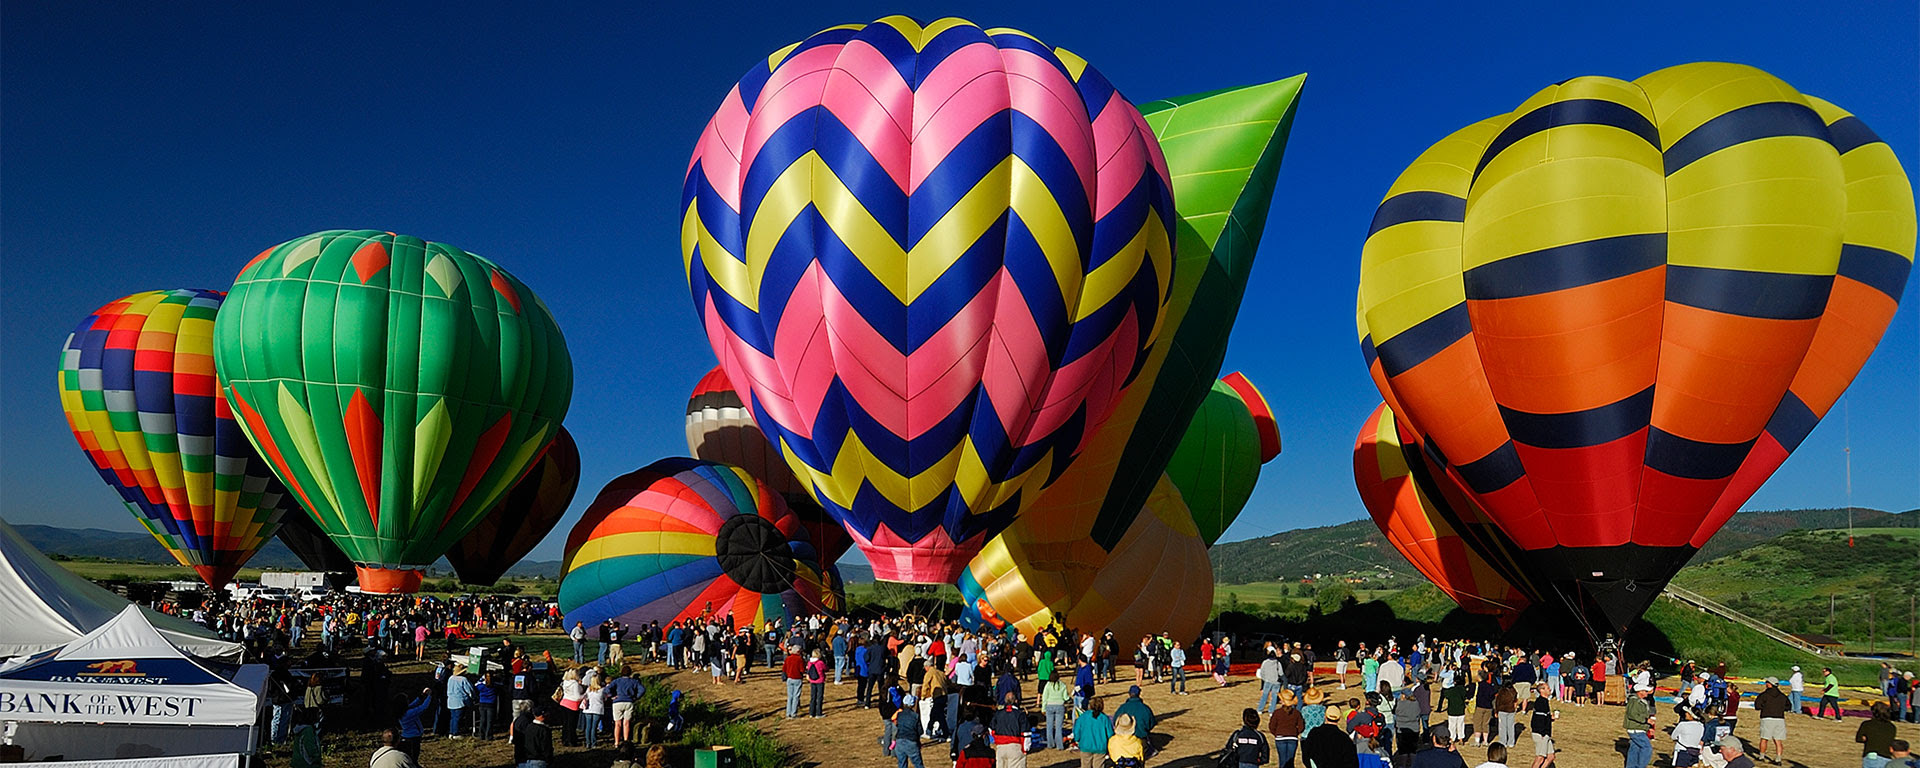 Steamboat Springs Colorado Hot Air Balloon Rodeo July 13 14 2019